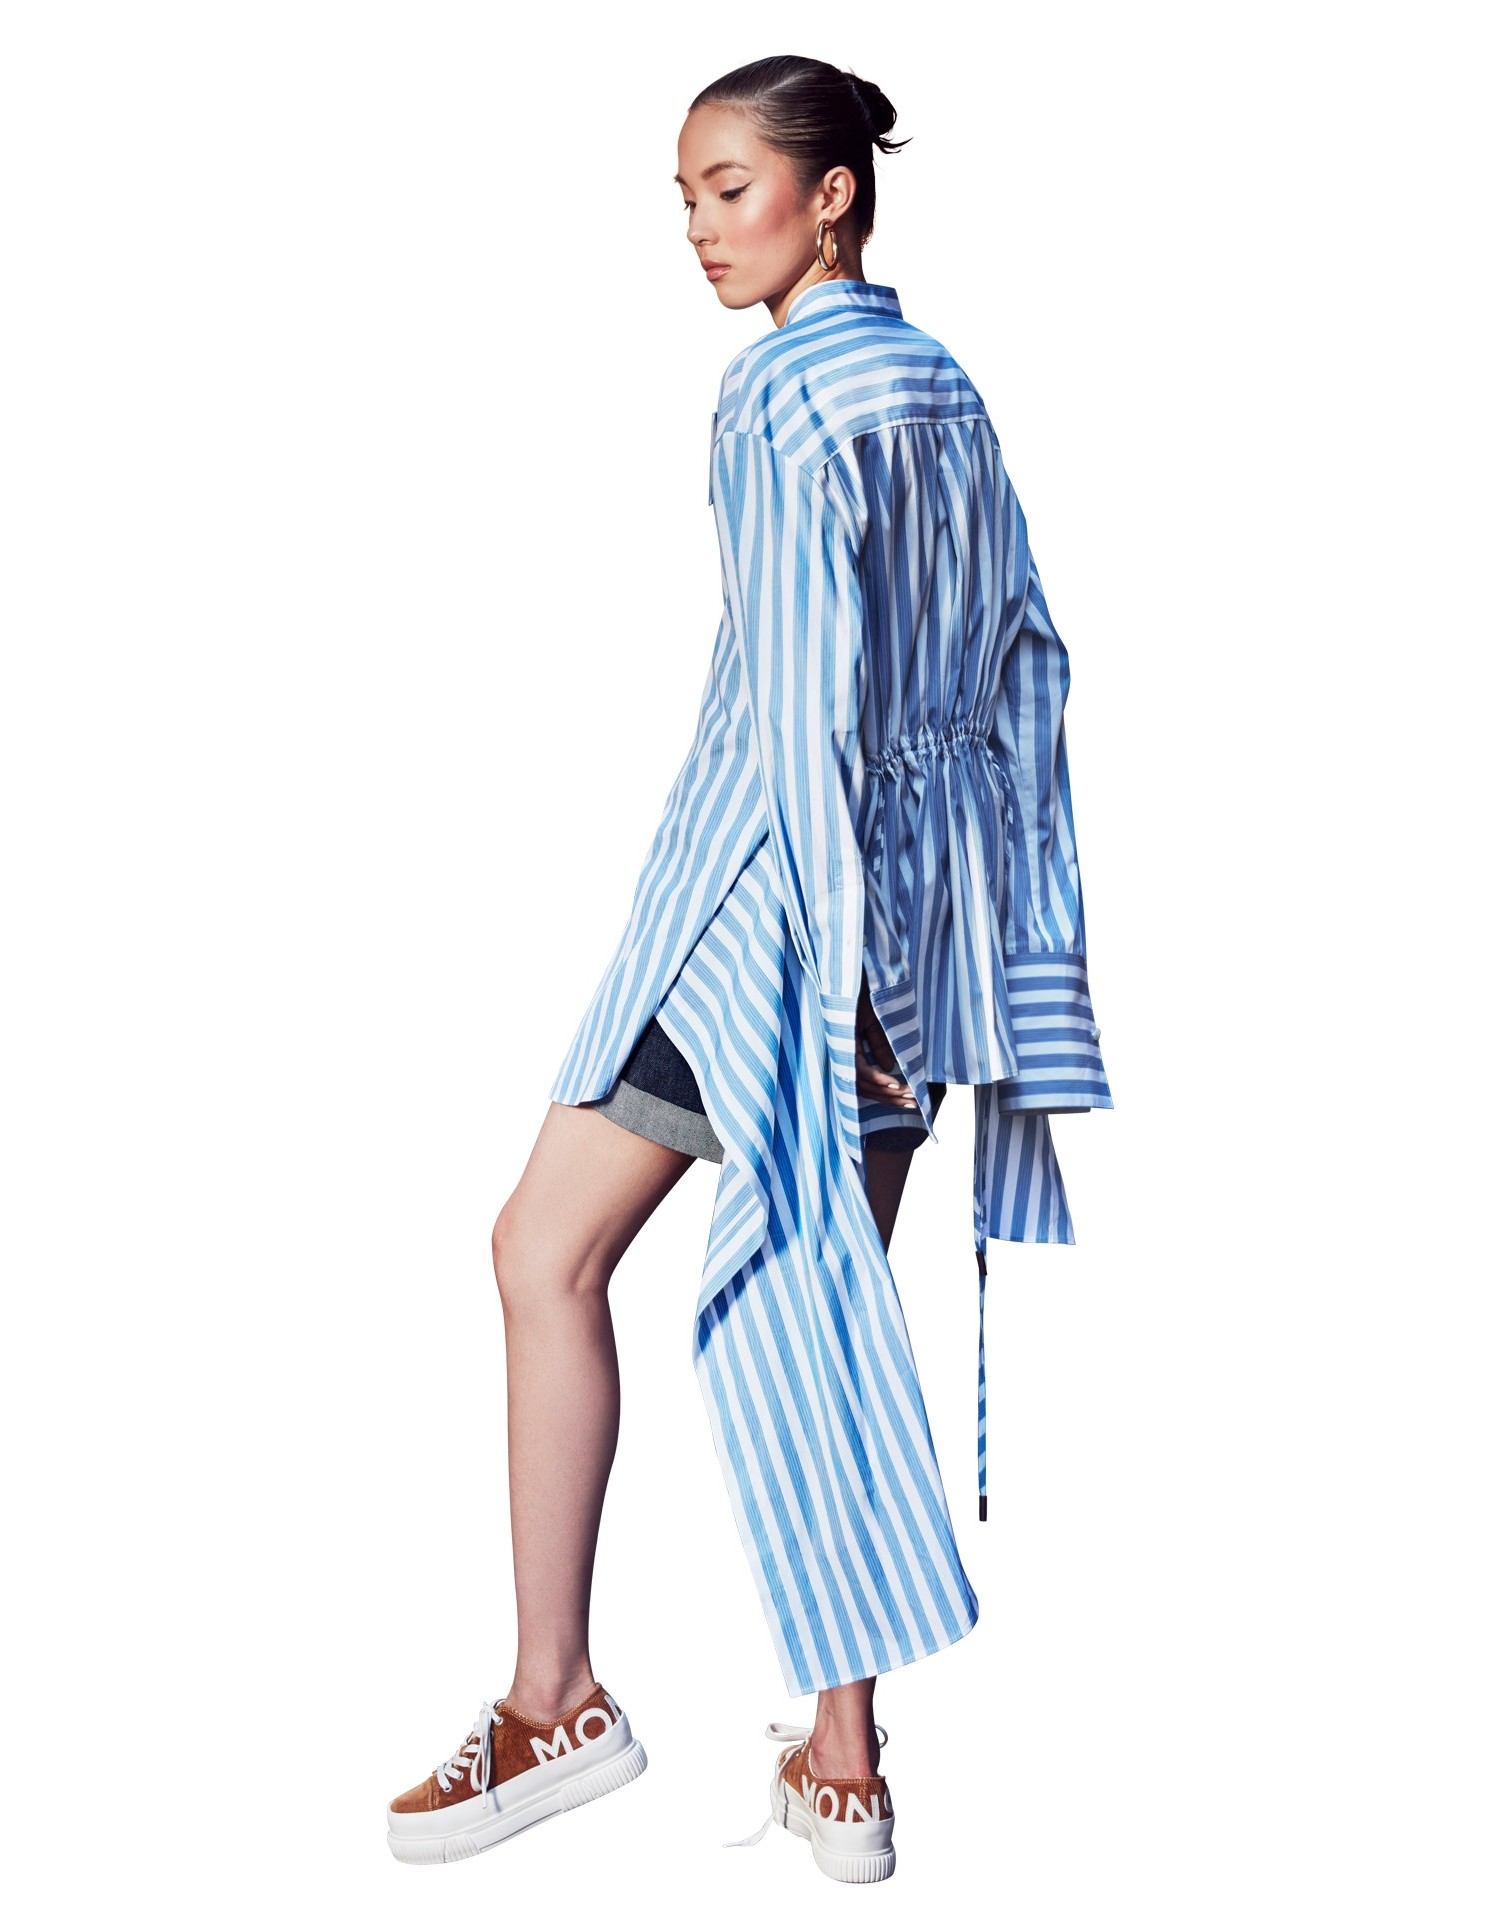 MONSE Striped Drawstring Shirt on Model Full Back View